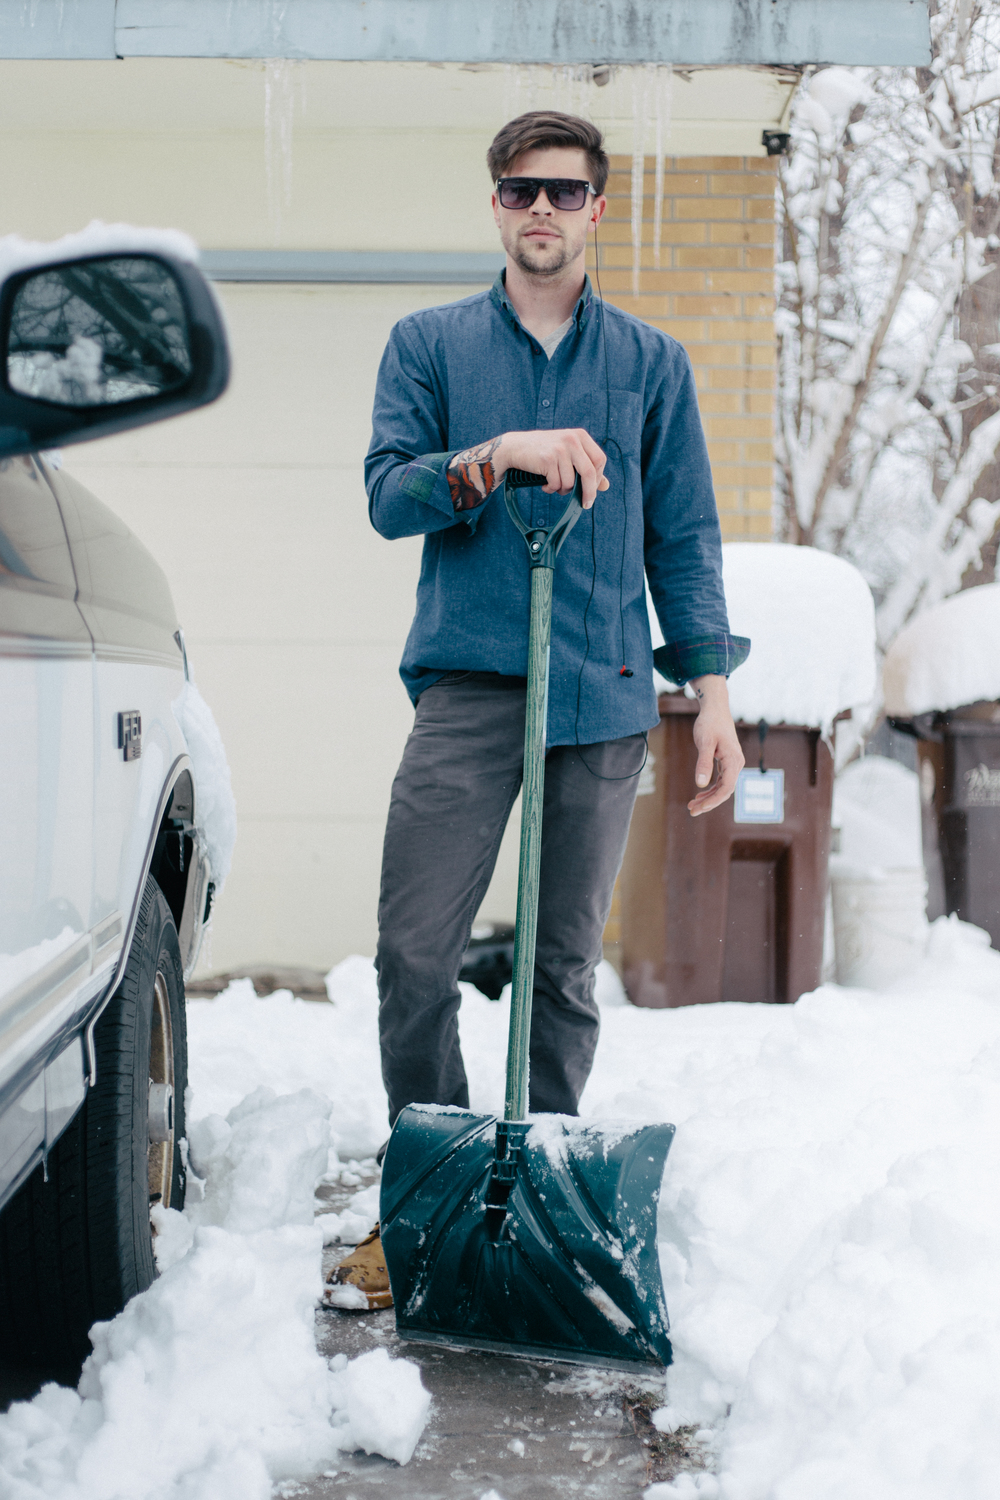 Rob Snow Shovel 2.jpg